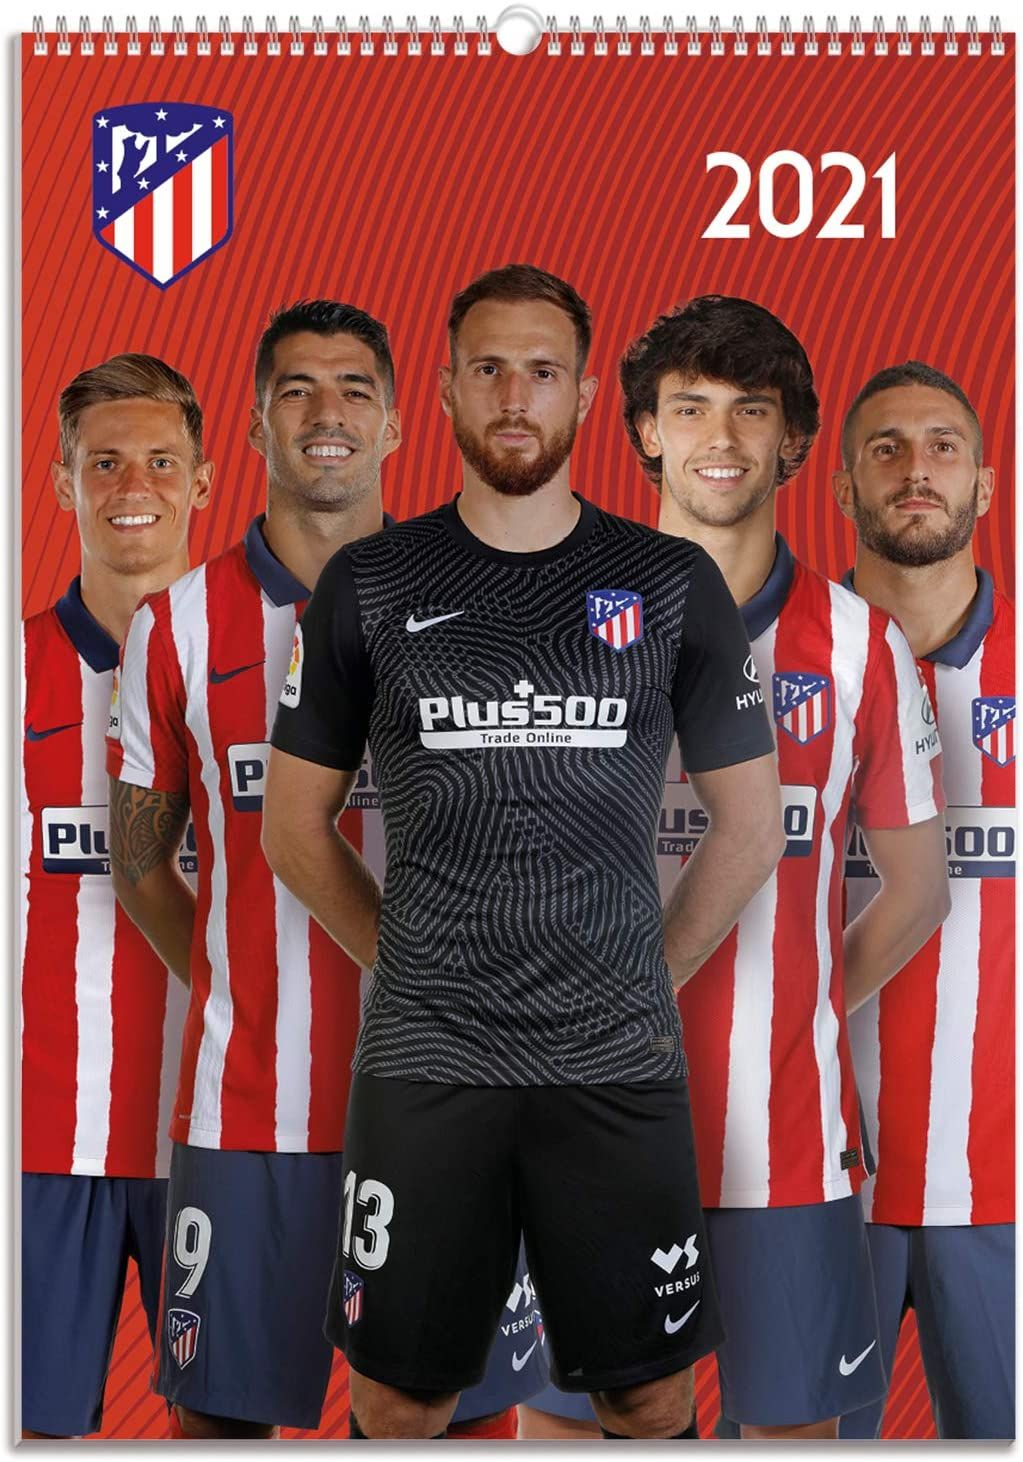 Calendario de pared 2021 Atletico Madrid